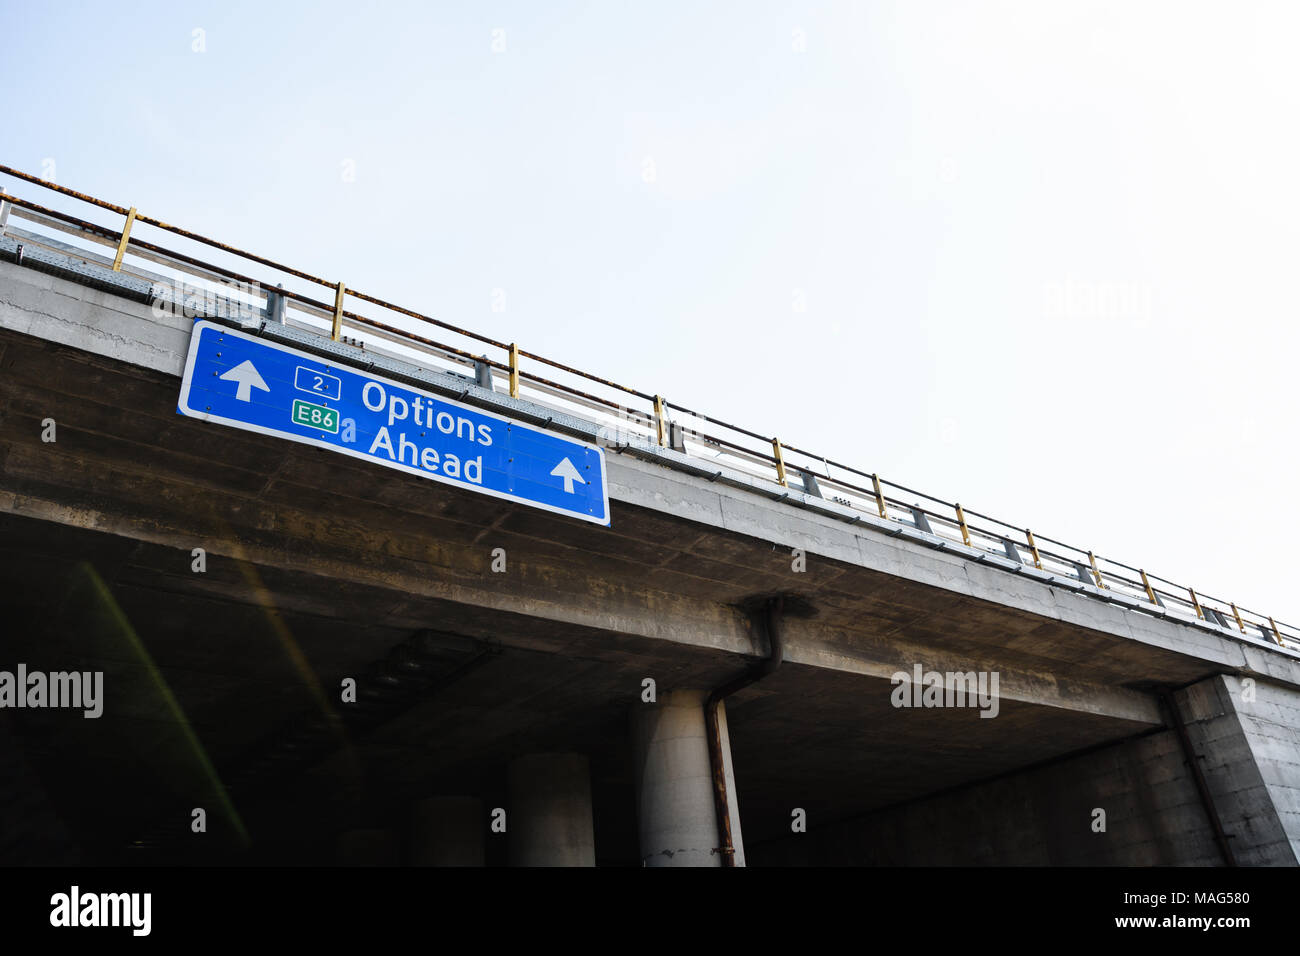 Options Ahead Blue Road Sign Against Clear Sky - Stock Image